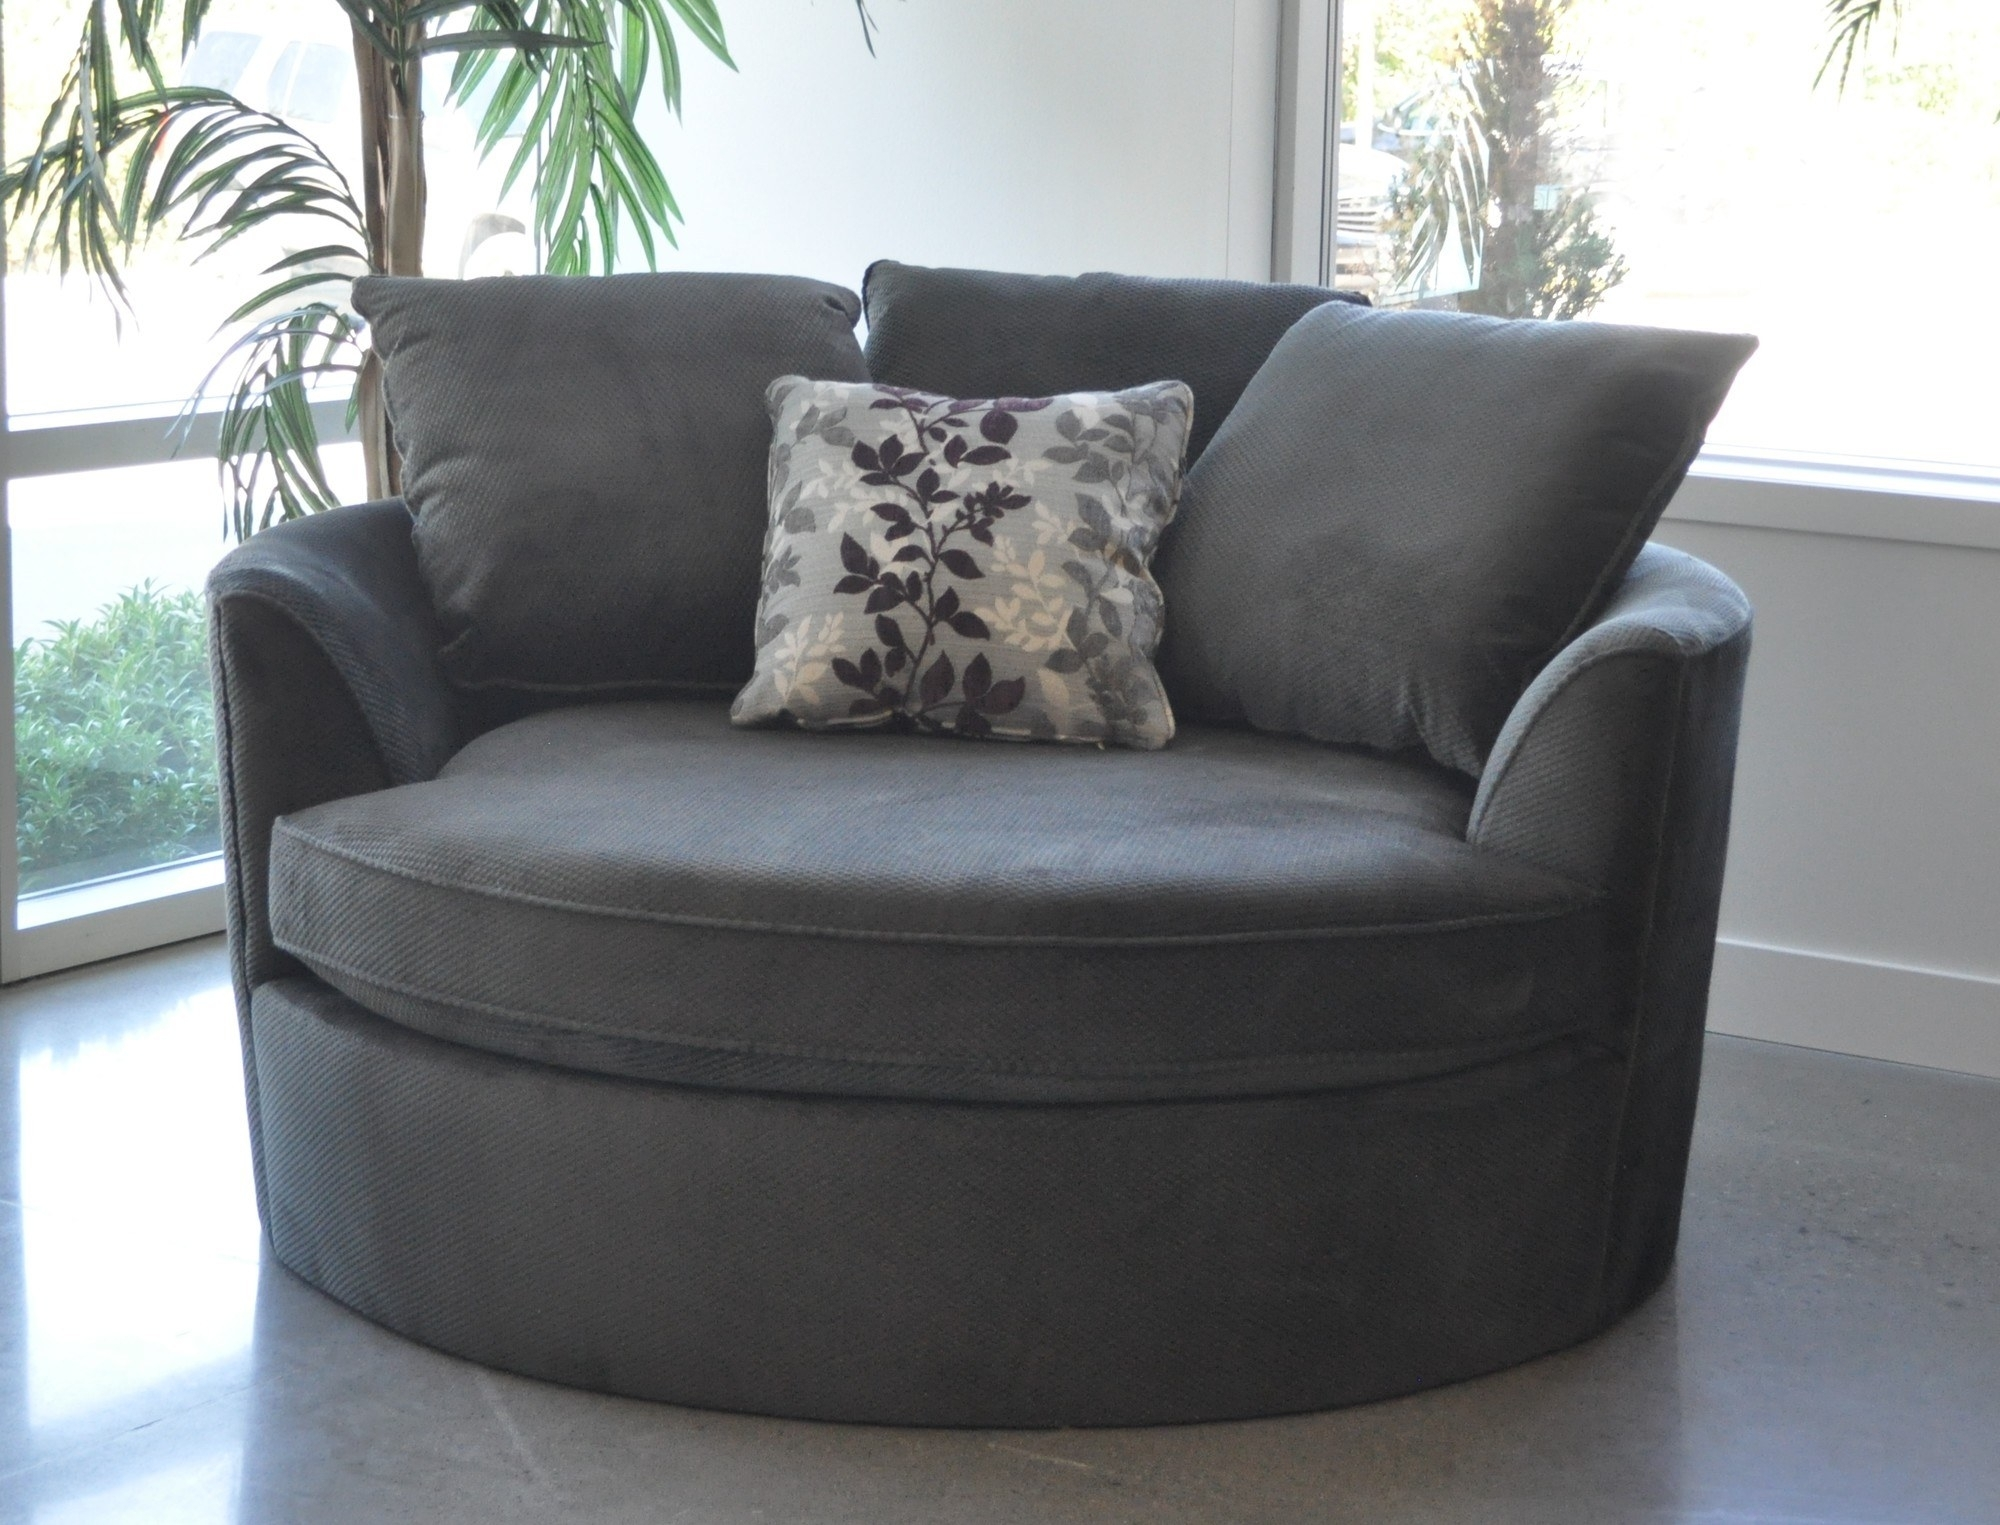 2017 Chaise Lounge Computer Chairs Regarding Lounge Chair : Cheap Comfy Chairs Chaise Furniture Small (View 8 of 15)